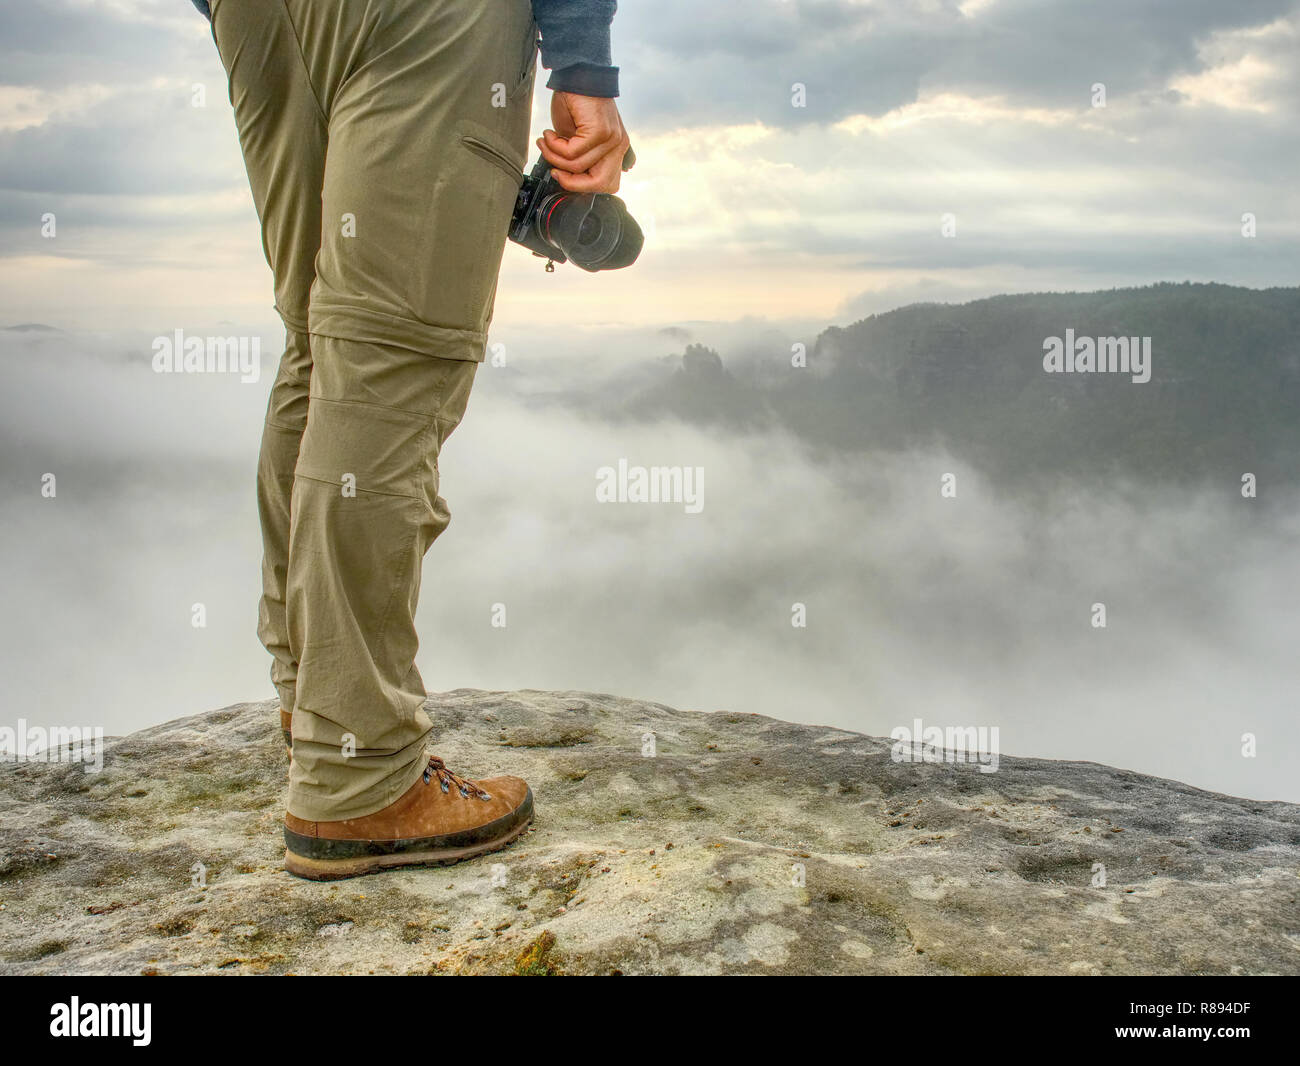 Landscape photograper with camera ready in hand. Man climbed up on exposed rock for fall photos with his digital camera. Cliff above misty autumn land - Stock Image